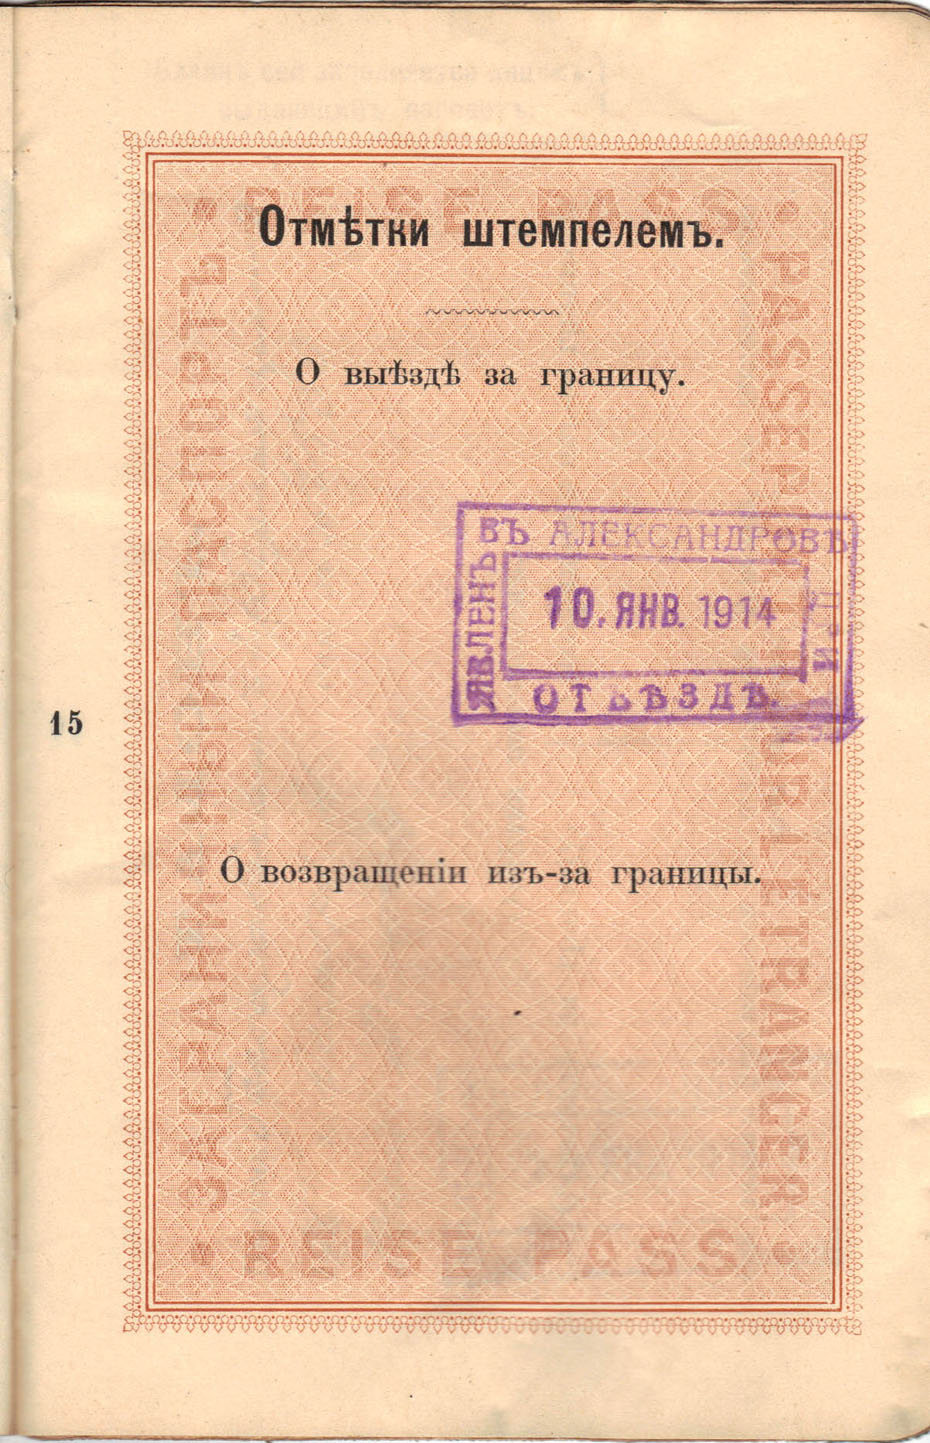 Polya passport p17